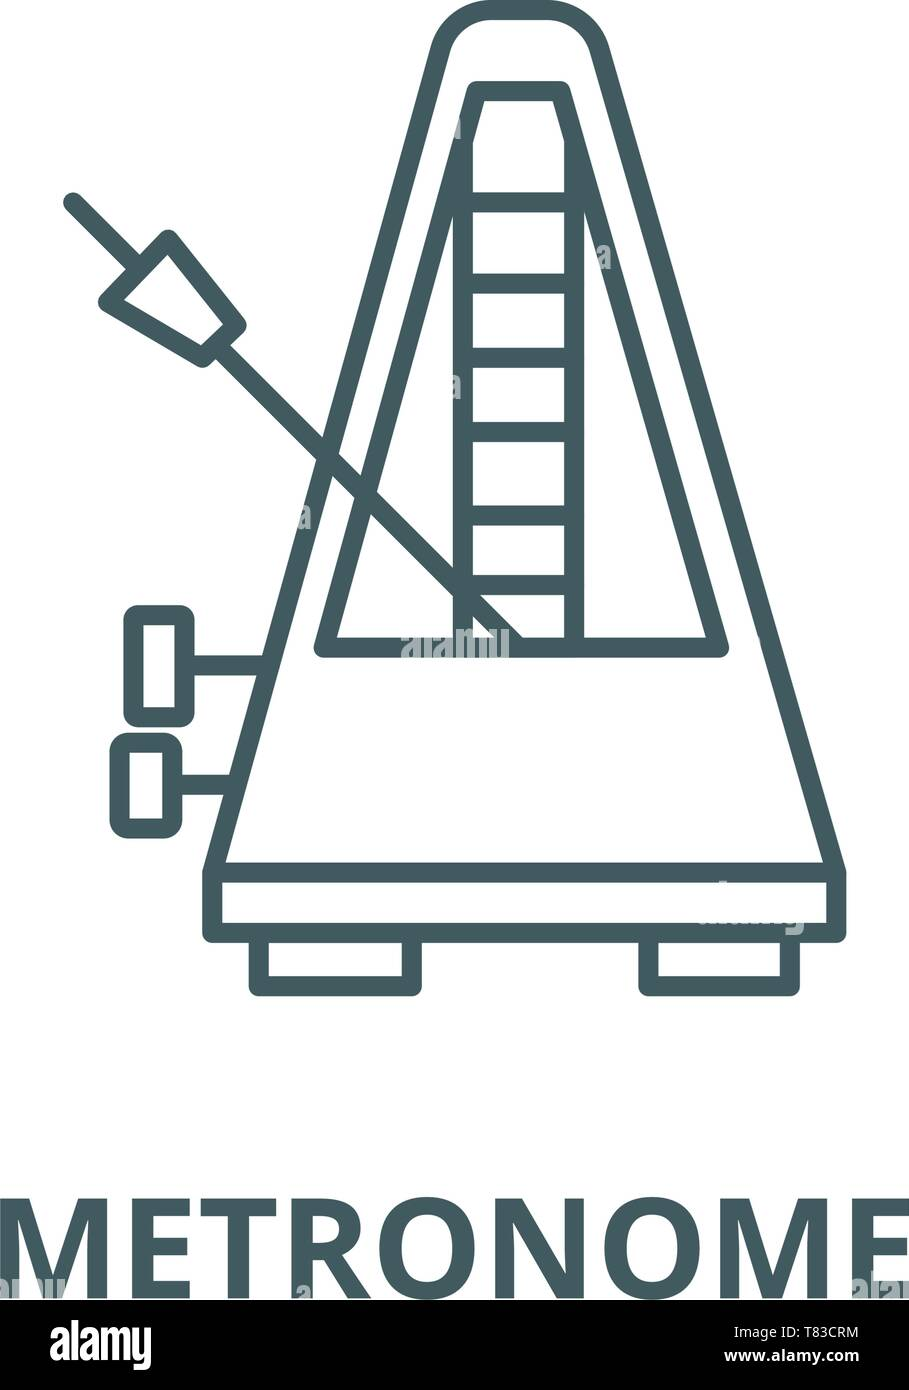 Metronome vector line icon, linear concept, outline sign, symbol - Stock Image